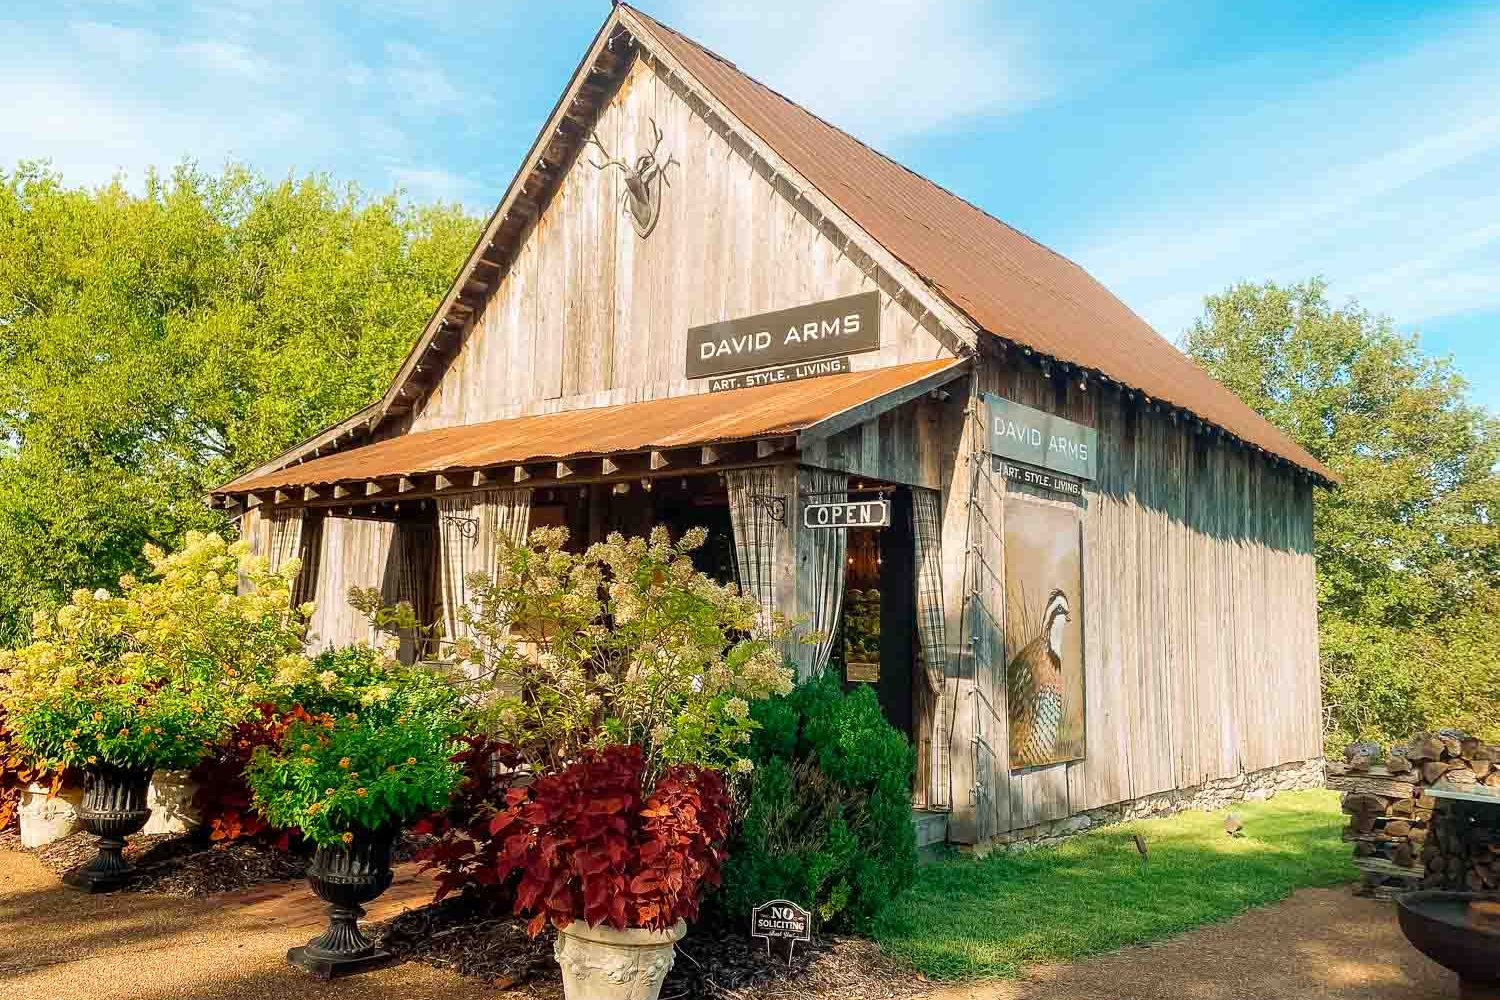 Exterior of David Arms Gallery, a barn surrounded by potted plants, well-trimmed grass, and a pebbled driveway - things to do in Leiper's Fork, TN